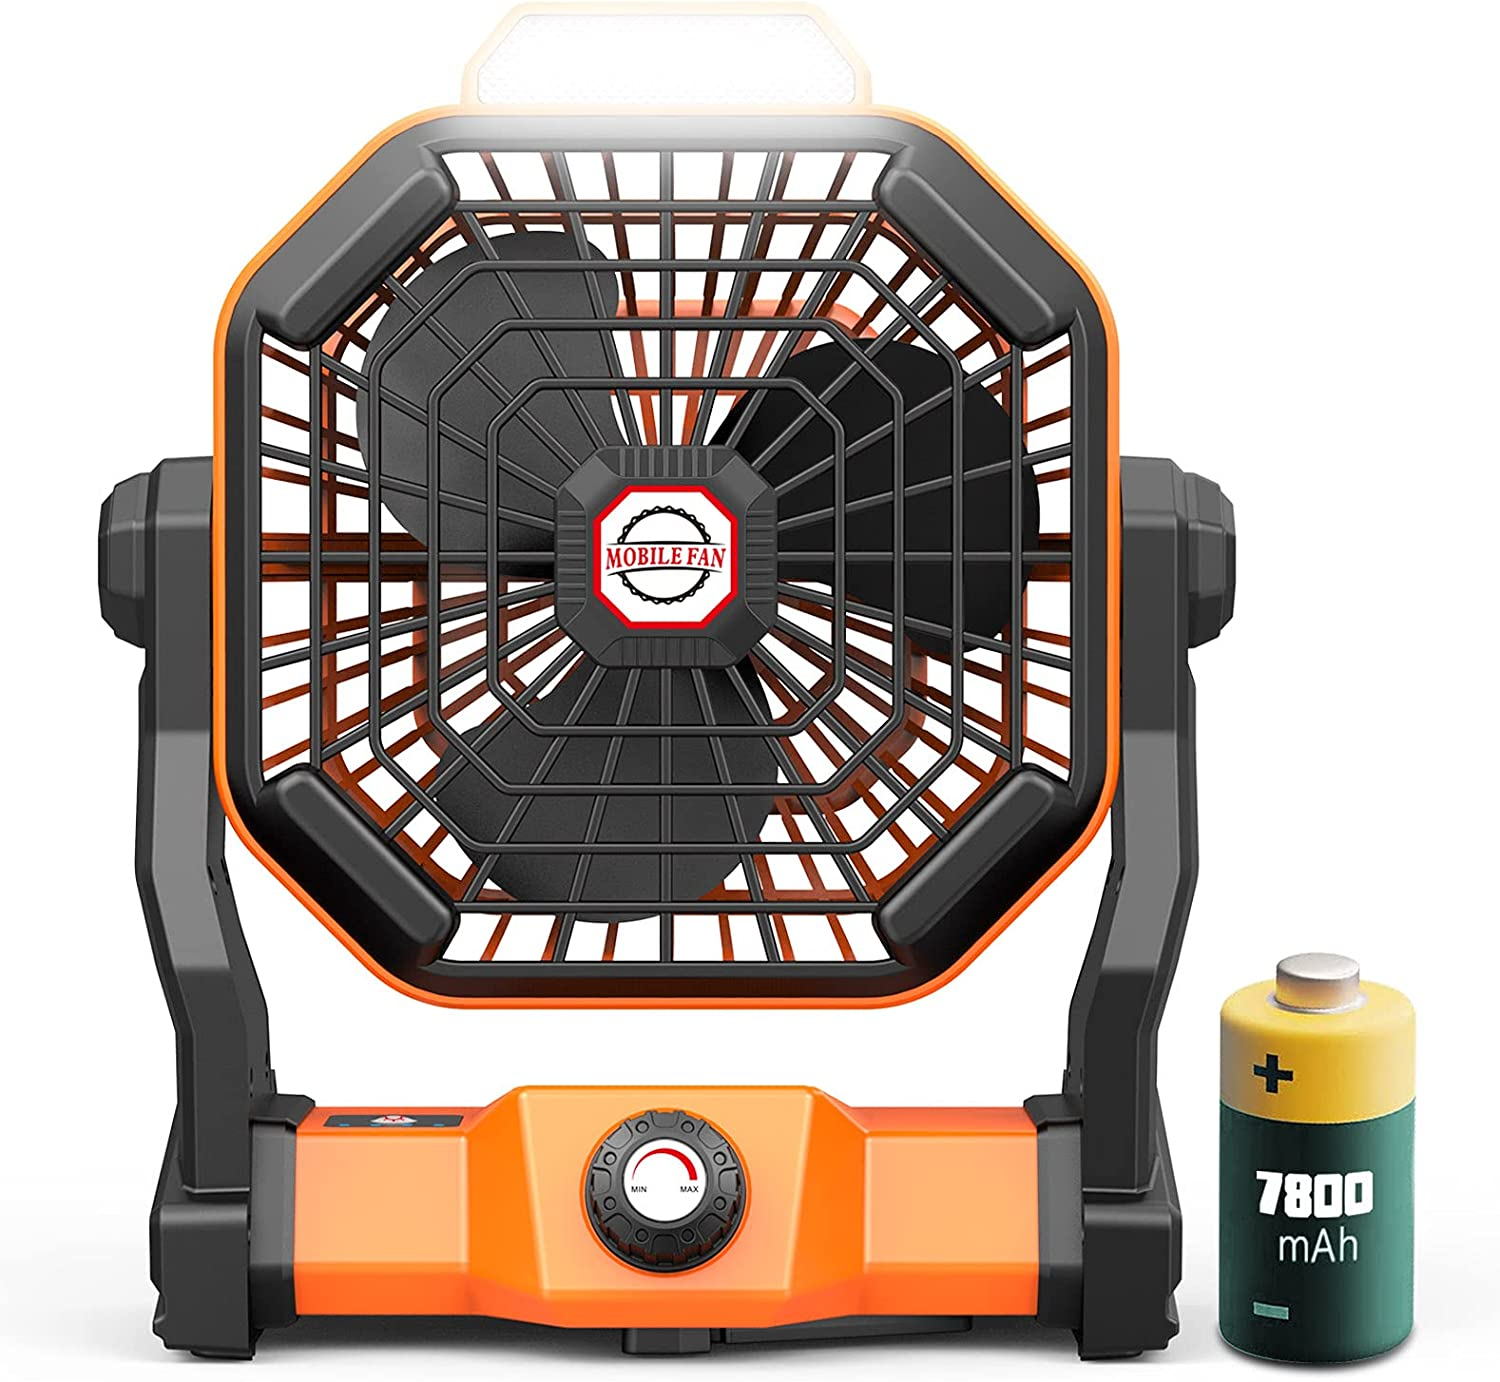 Battery Max 80% OFF Powered Fan Portable Max 57% OFF Personal 8-inch Rechargeable